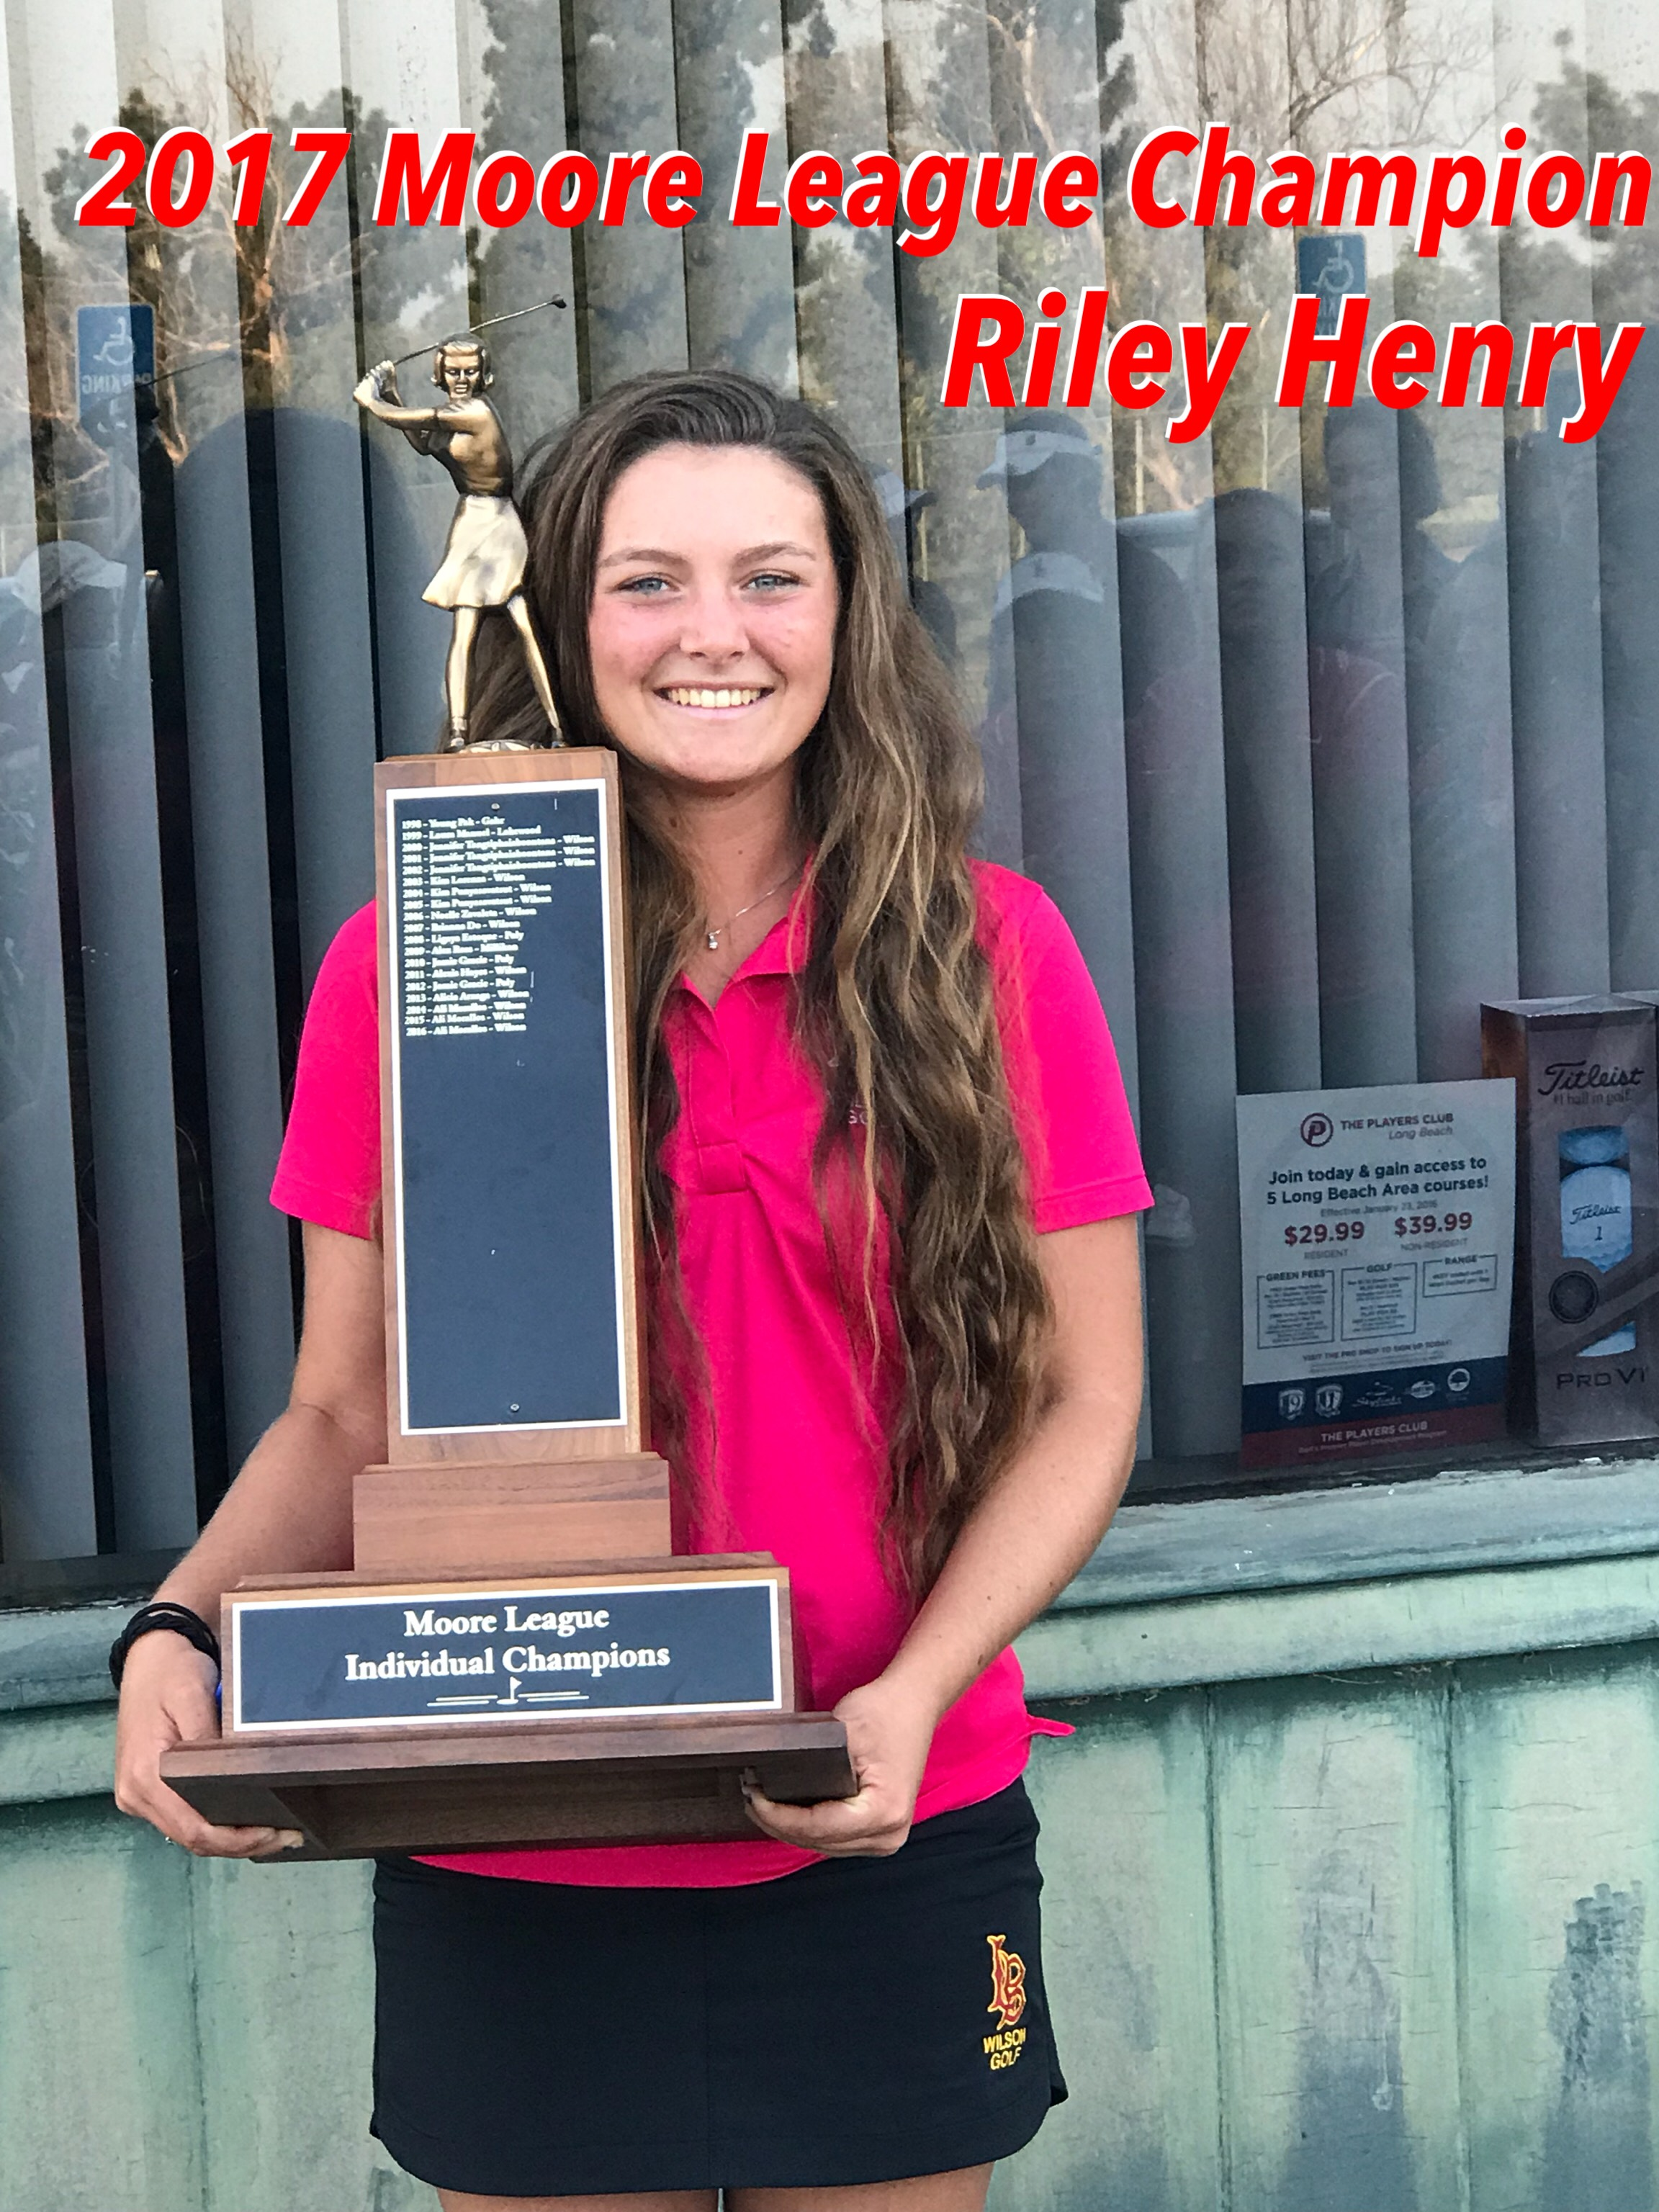 2017 Moore League Champion - Riley Henry